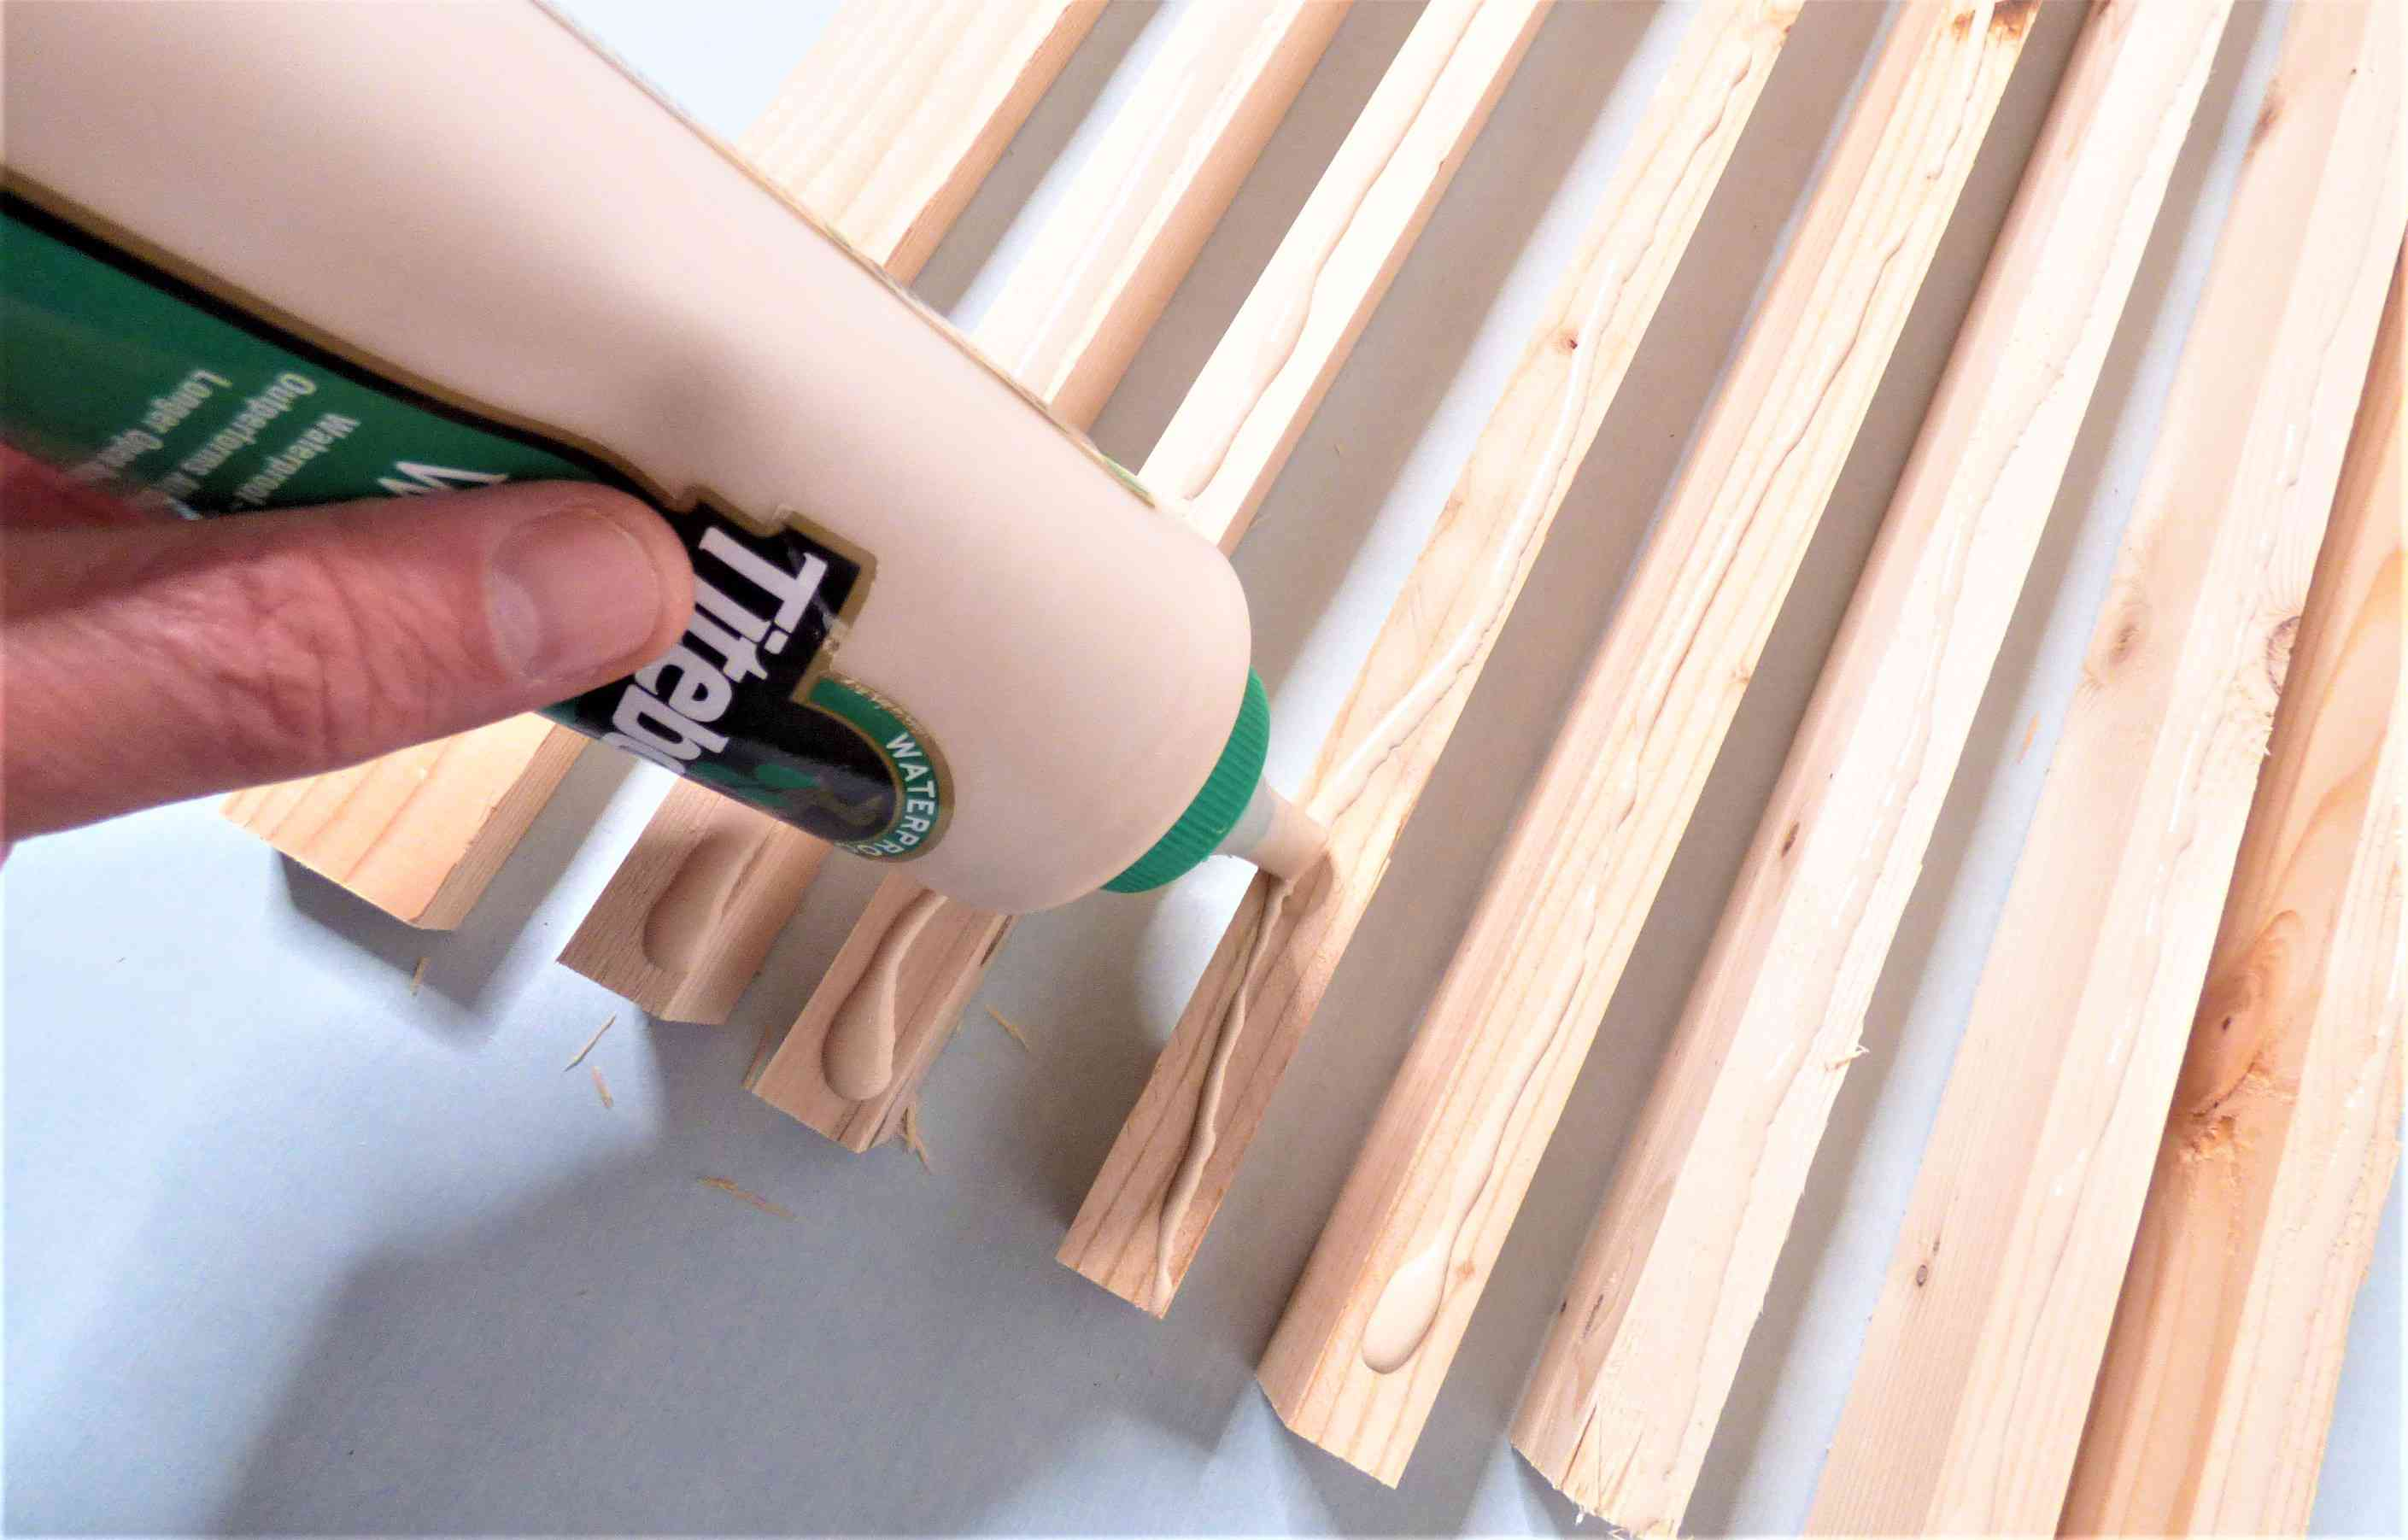 Apply Glue to Boards